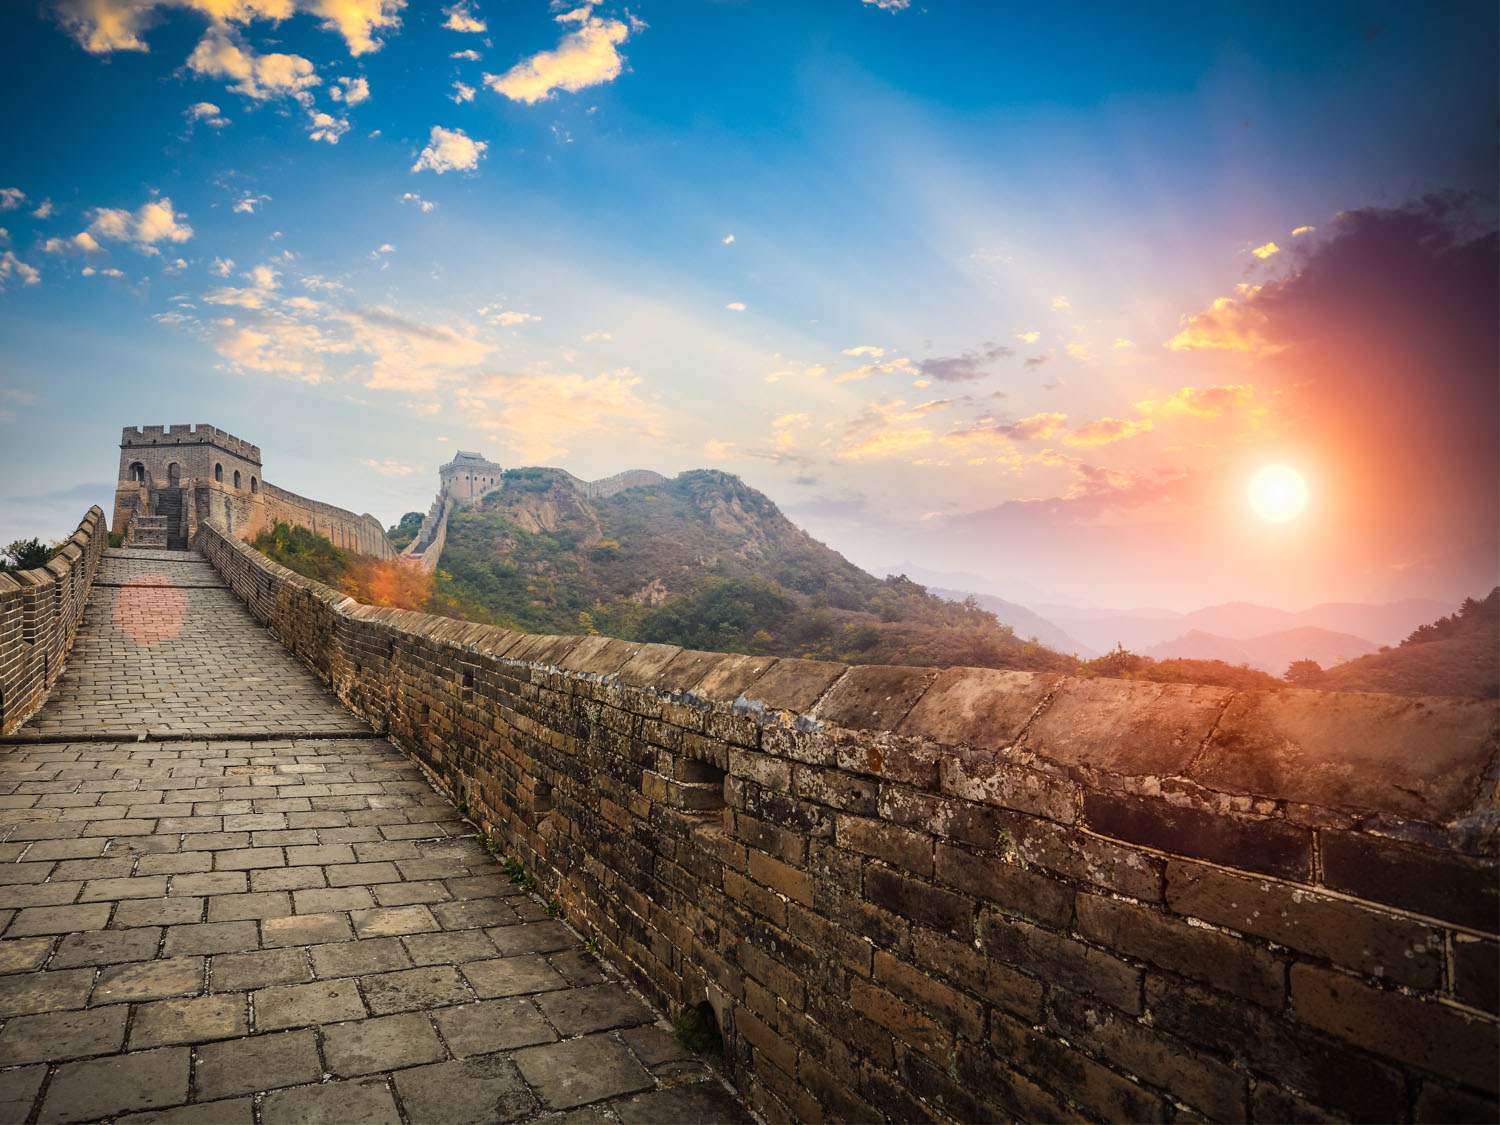 Discovering The Great Wall Of China